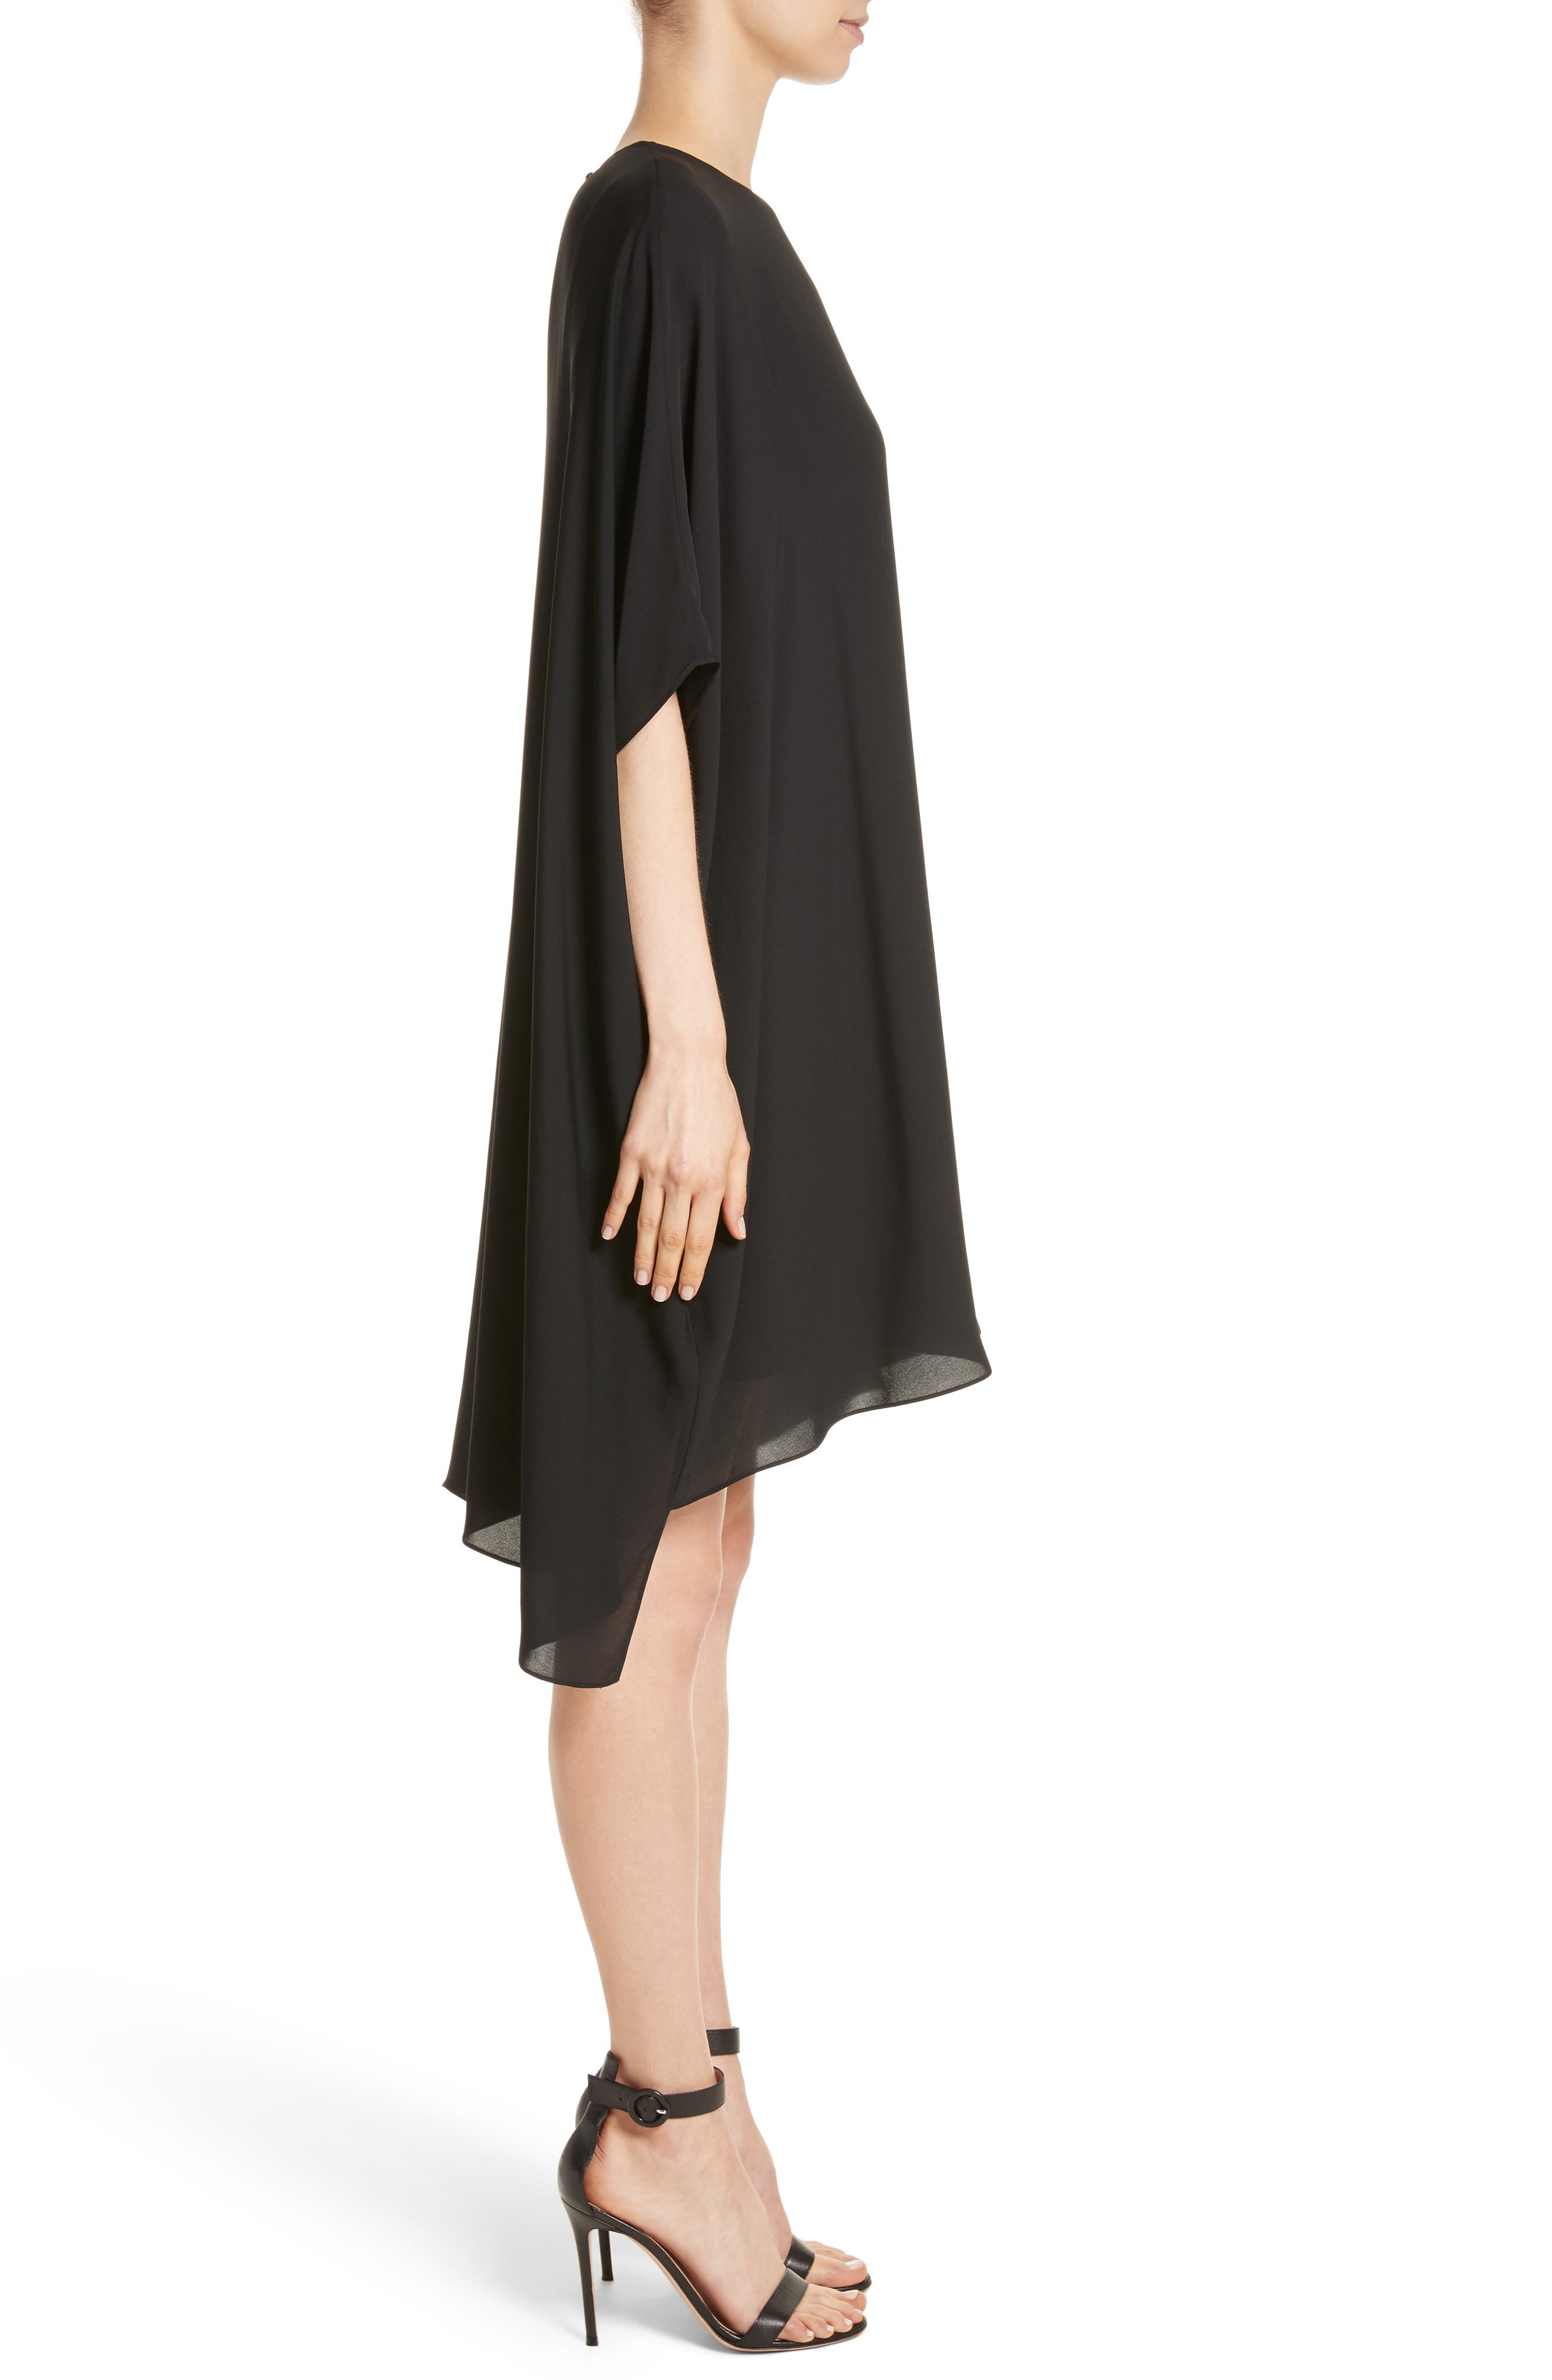 ST. JOHN COLLECTION,                             Double Silk Georgette Draped Dress,                             Alternate thumbnail 3, color,                             CAVIAR